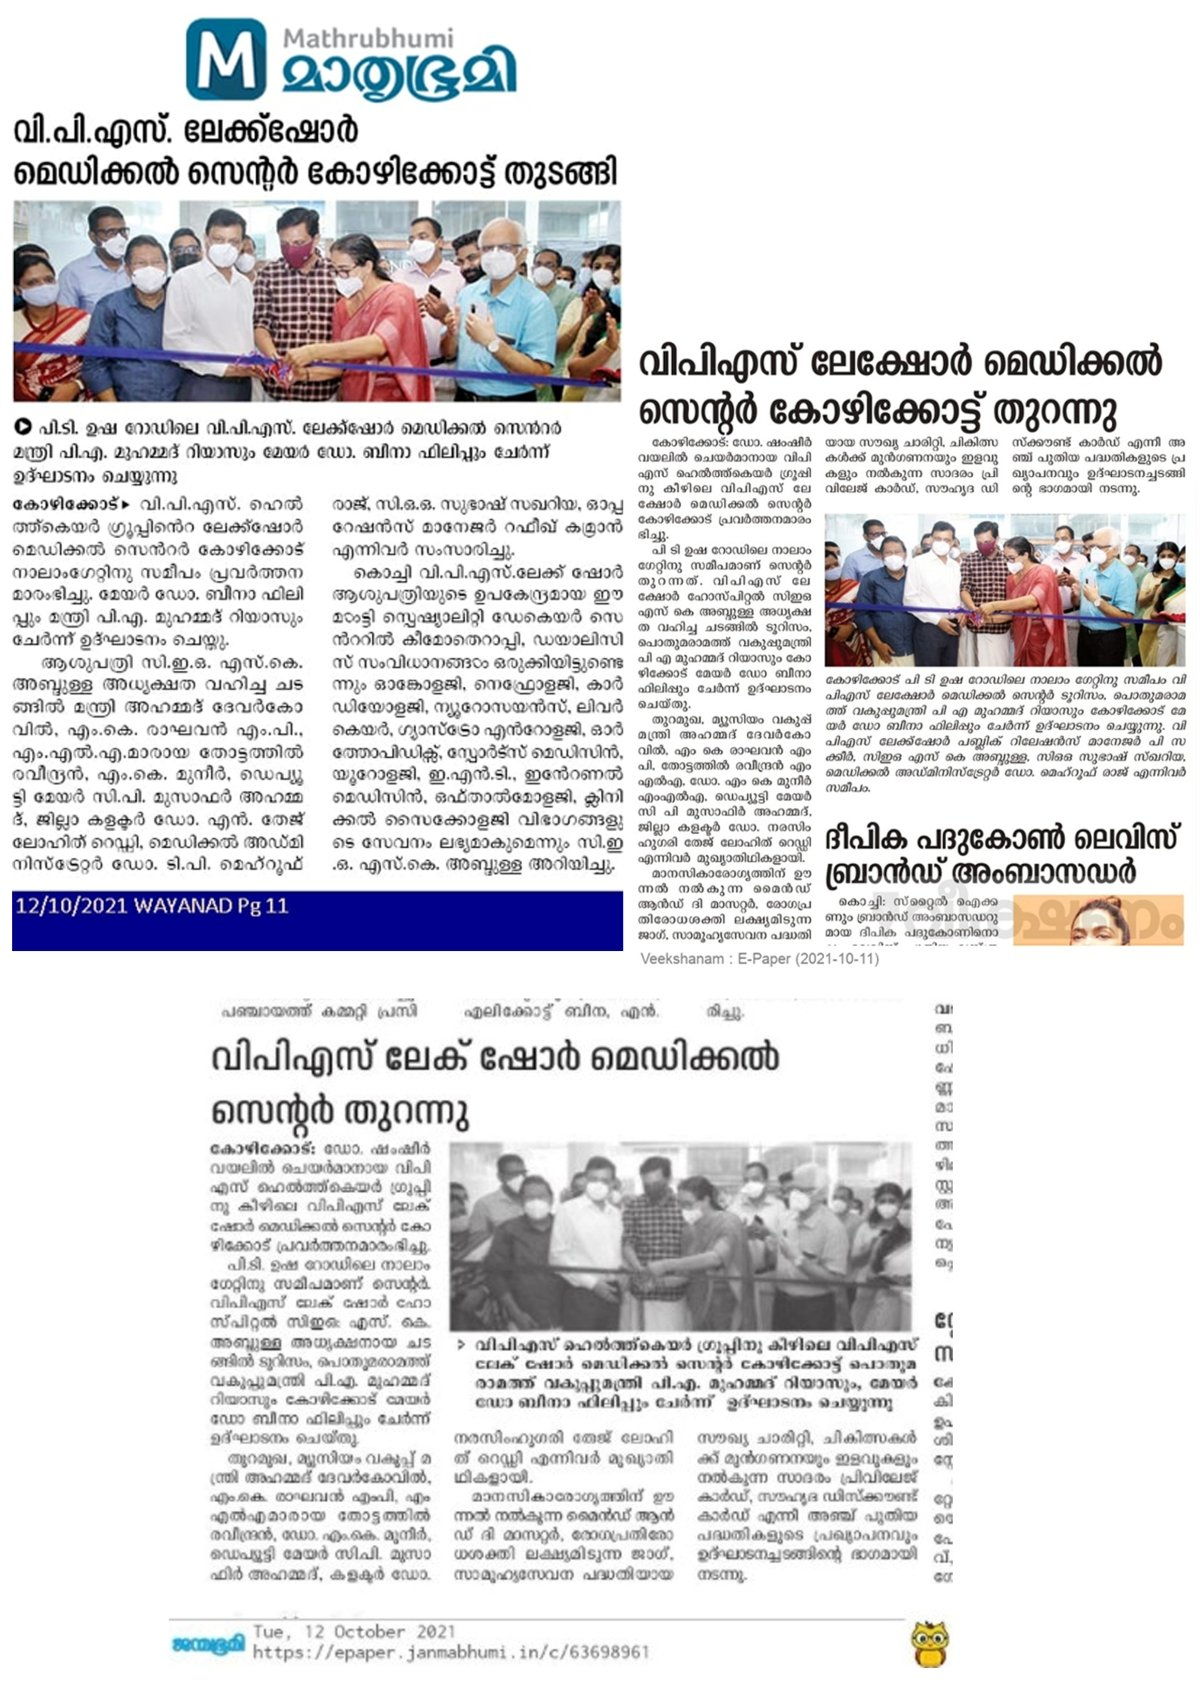 VPS Lakeshore Medical Centre Launched at Calicut